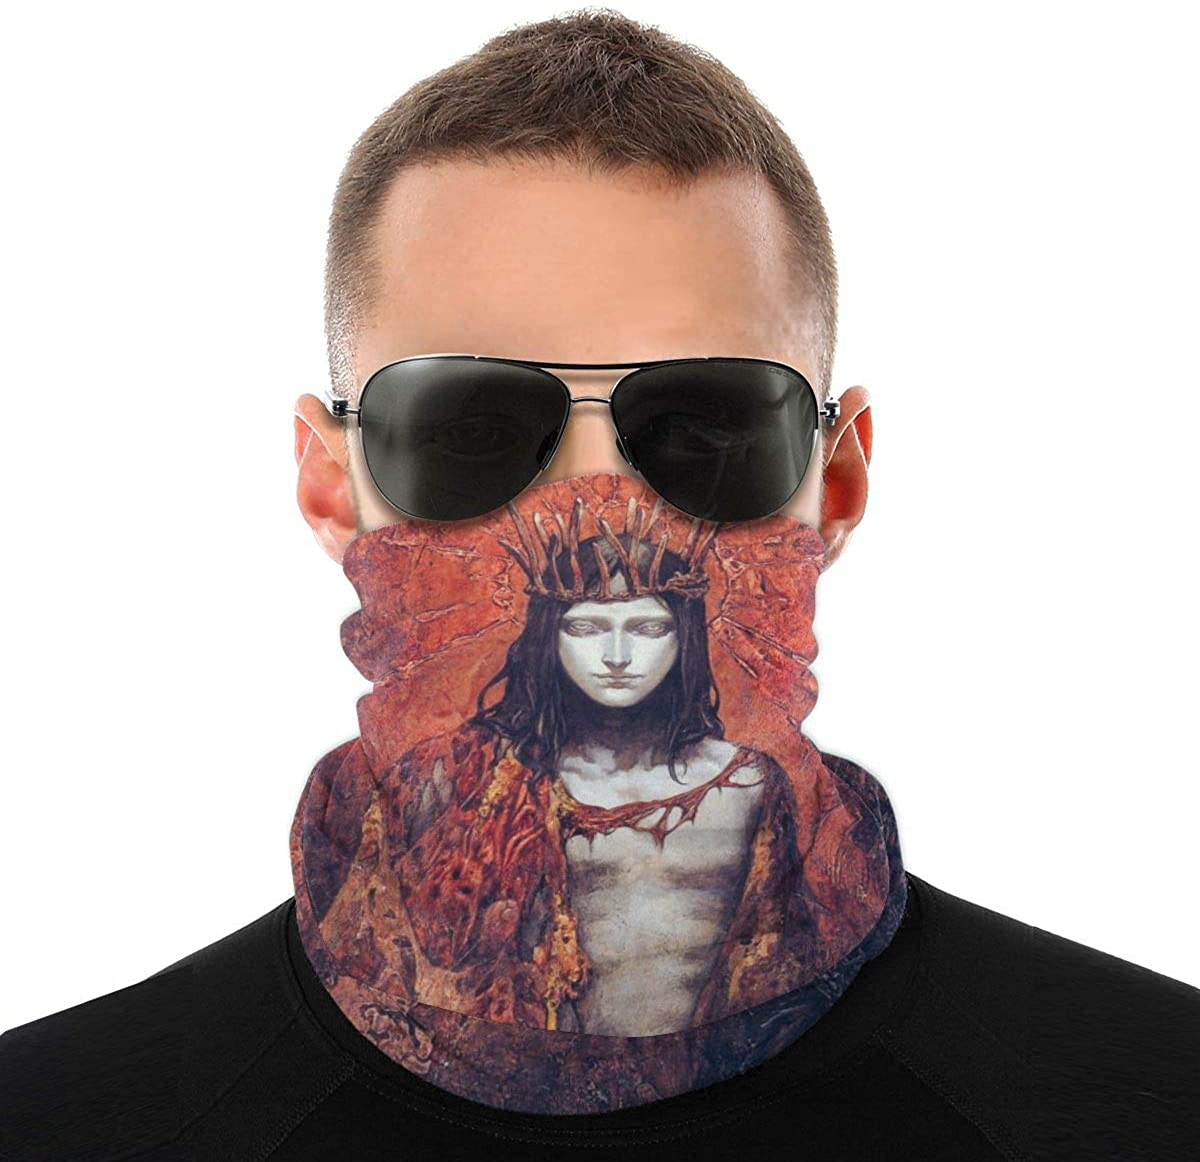 Red Man Ruthless Corrupt Novelty Neck Gaiter Unisex Adult Windproof Mask Dust Sports Face Mask Half Balaclava Weather Bandana Women Men Outdoors Festivals